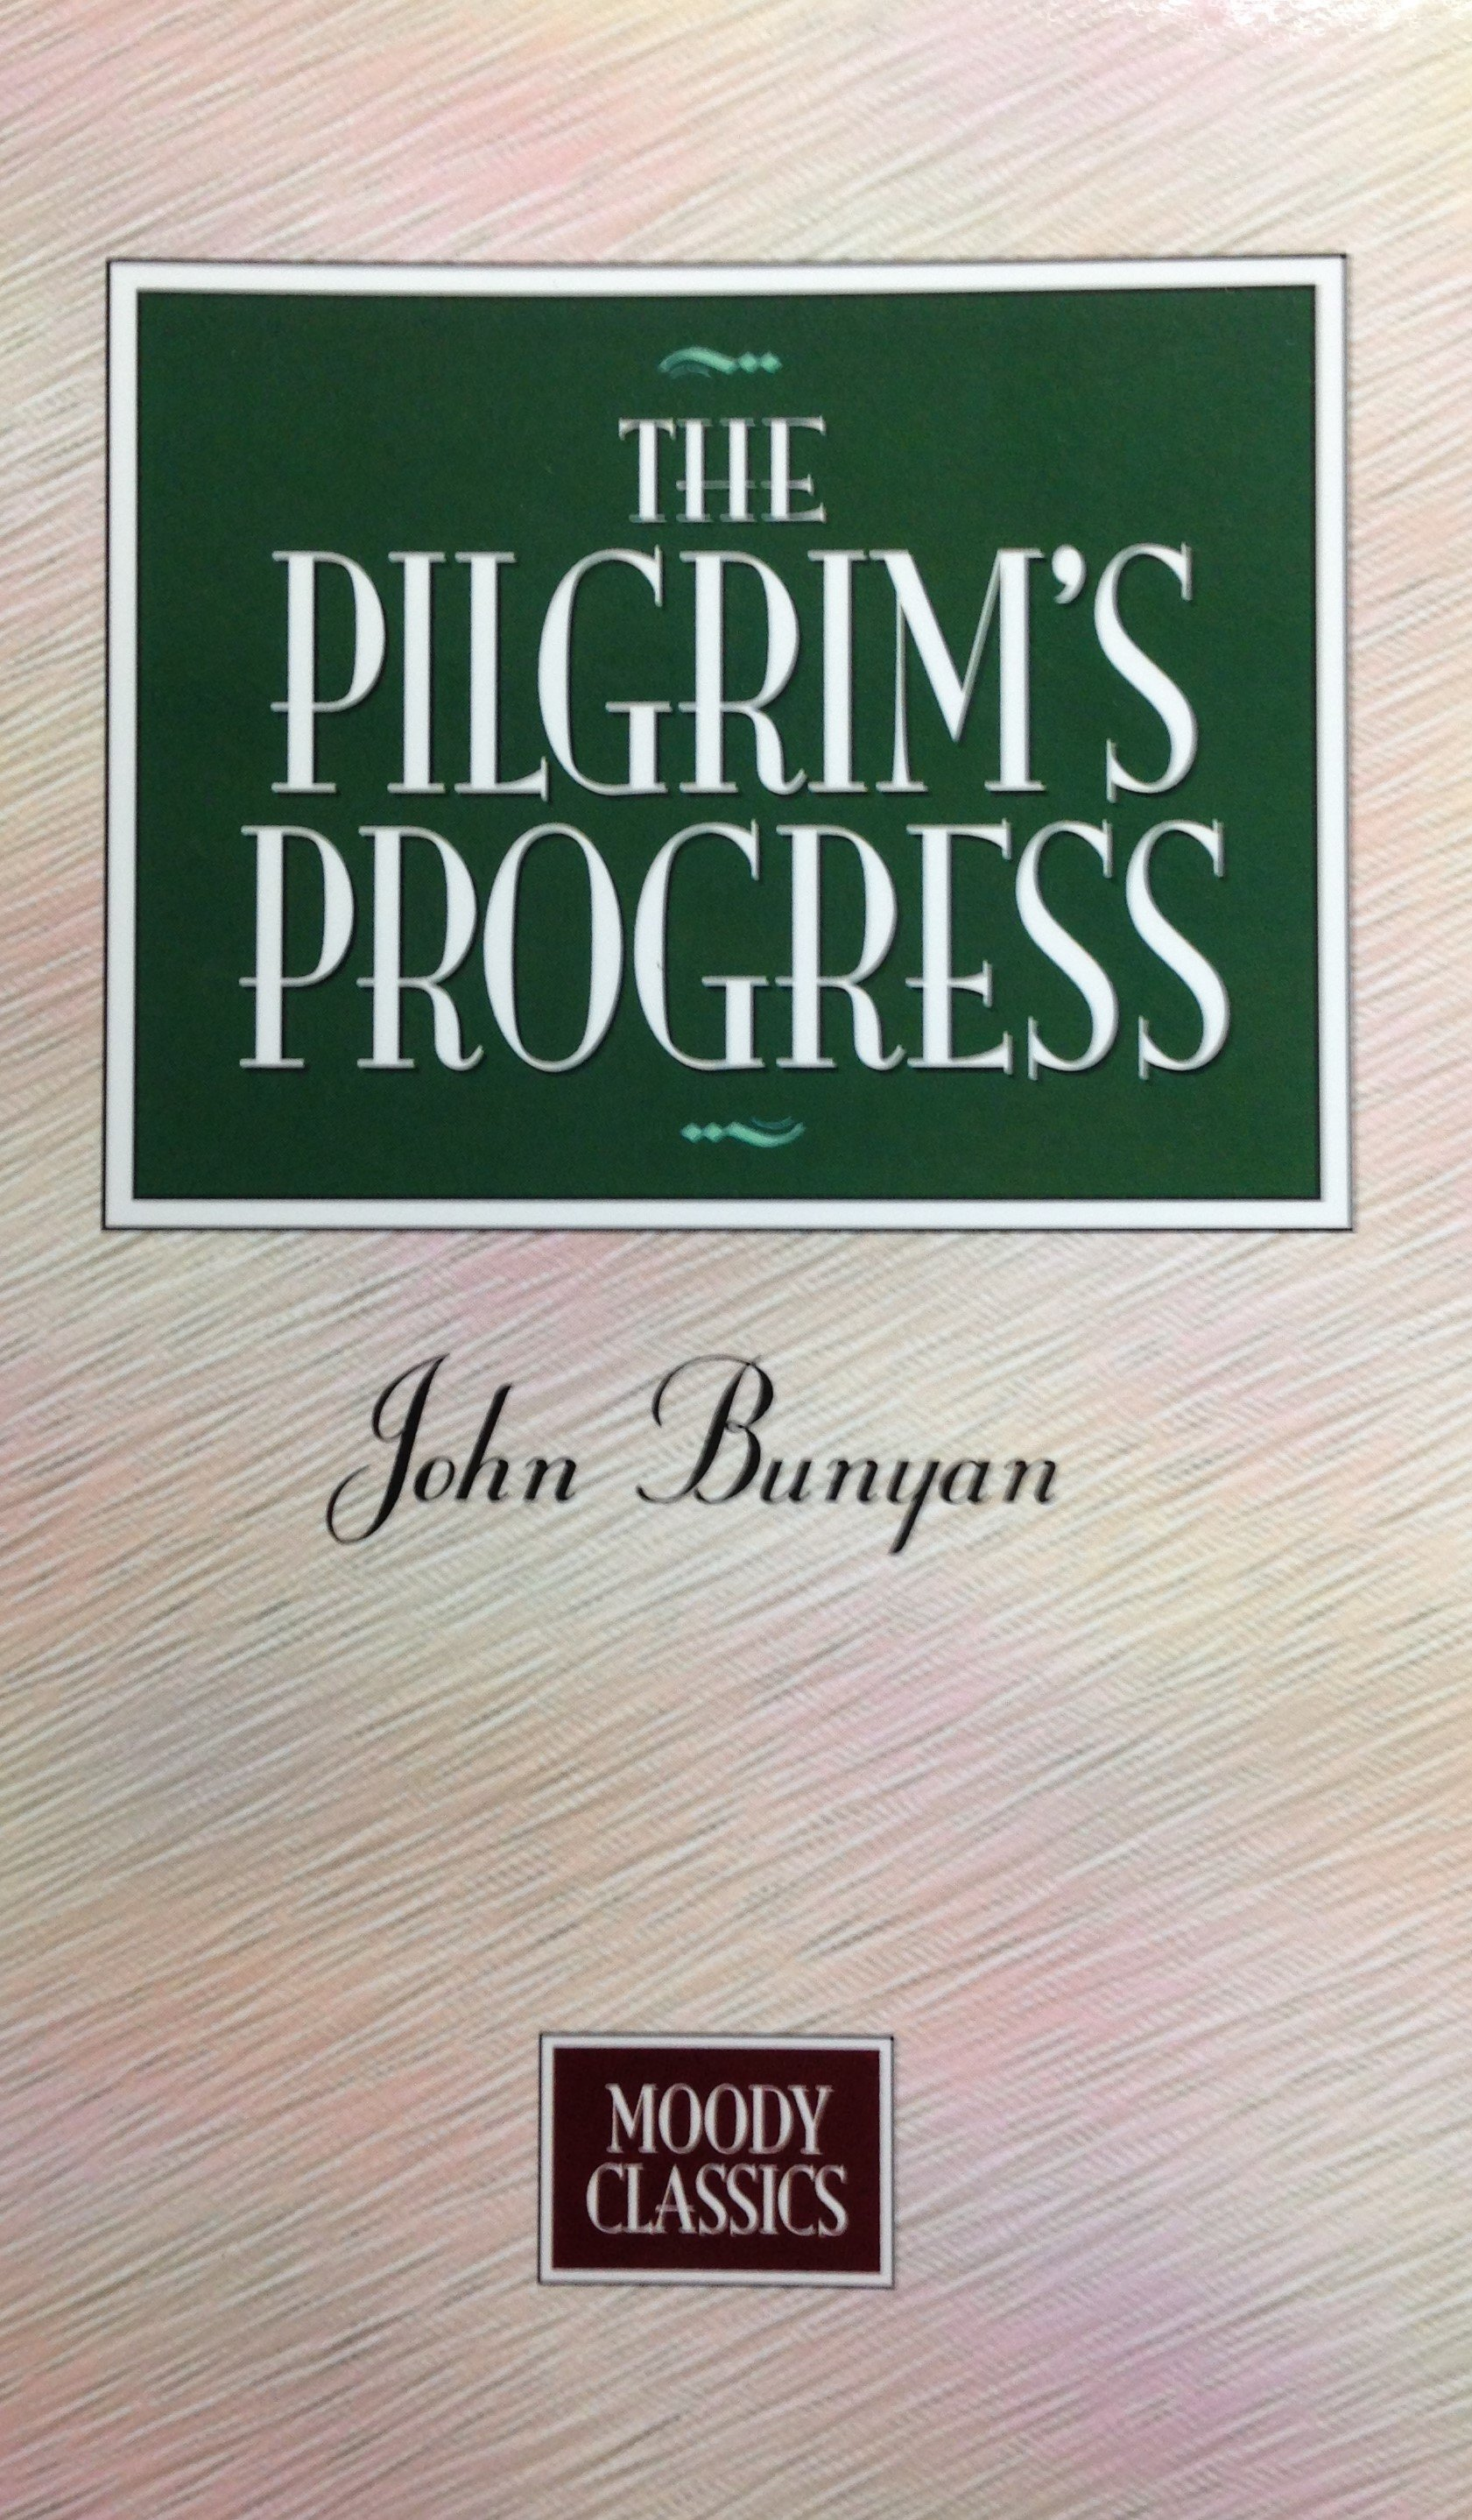 The Pilgrim's Progress by John Bunyan (Small paperback) 00093